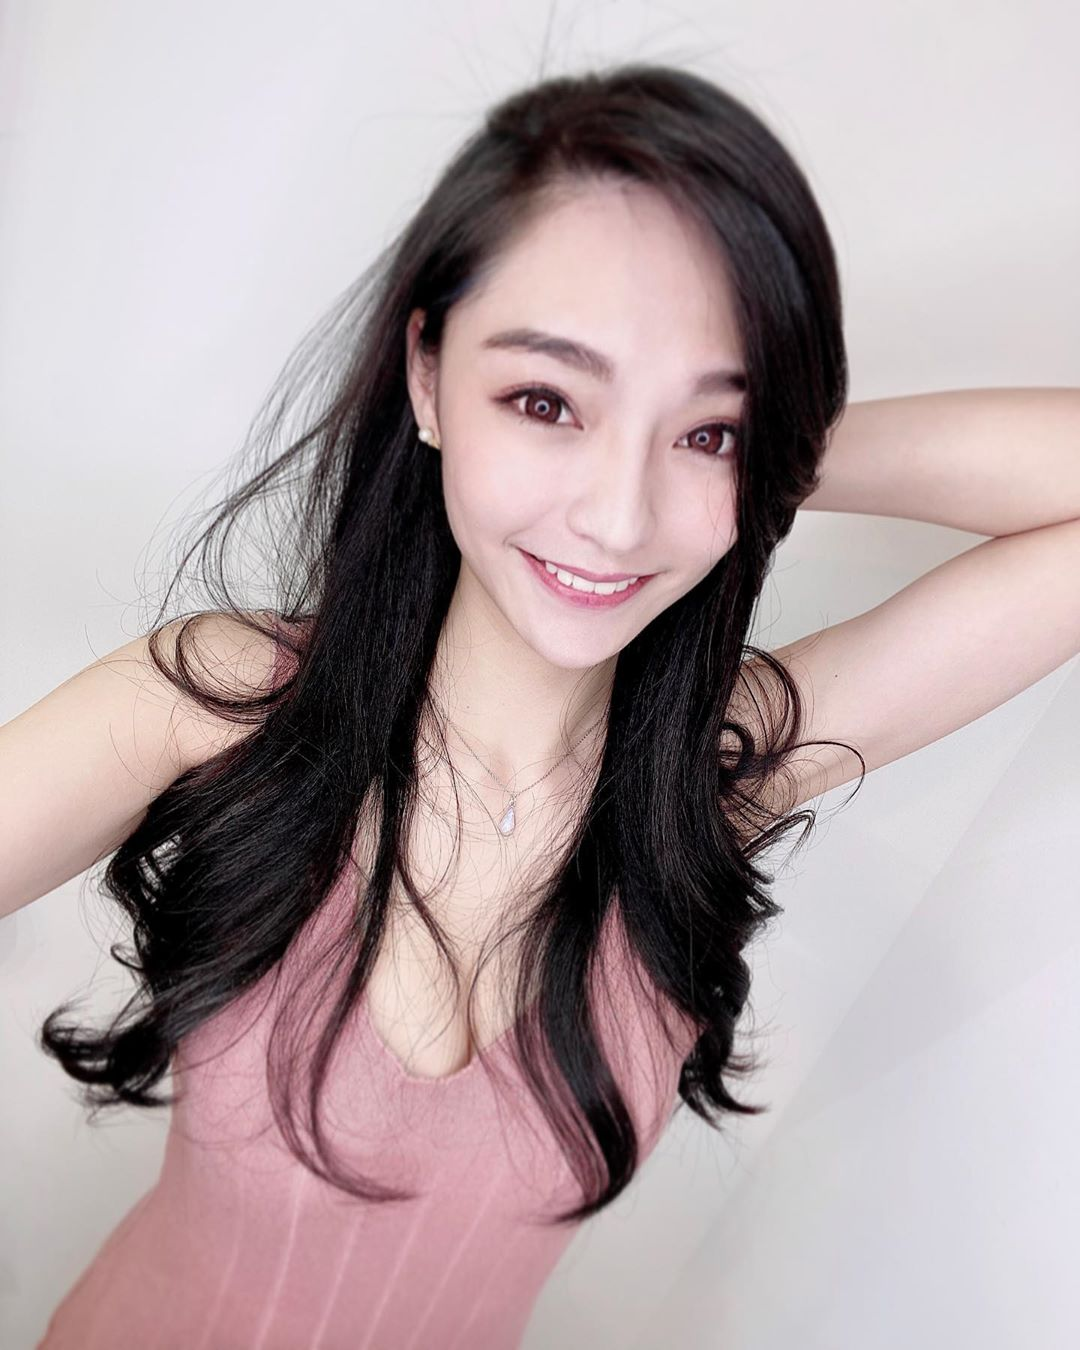 uCK2a3 - IG正妹—Queenie Hsieh